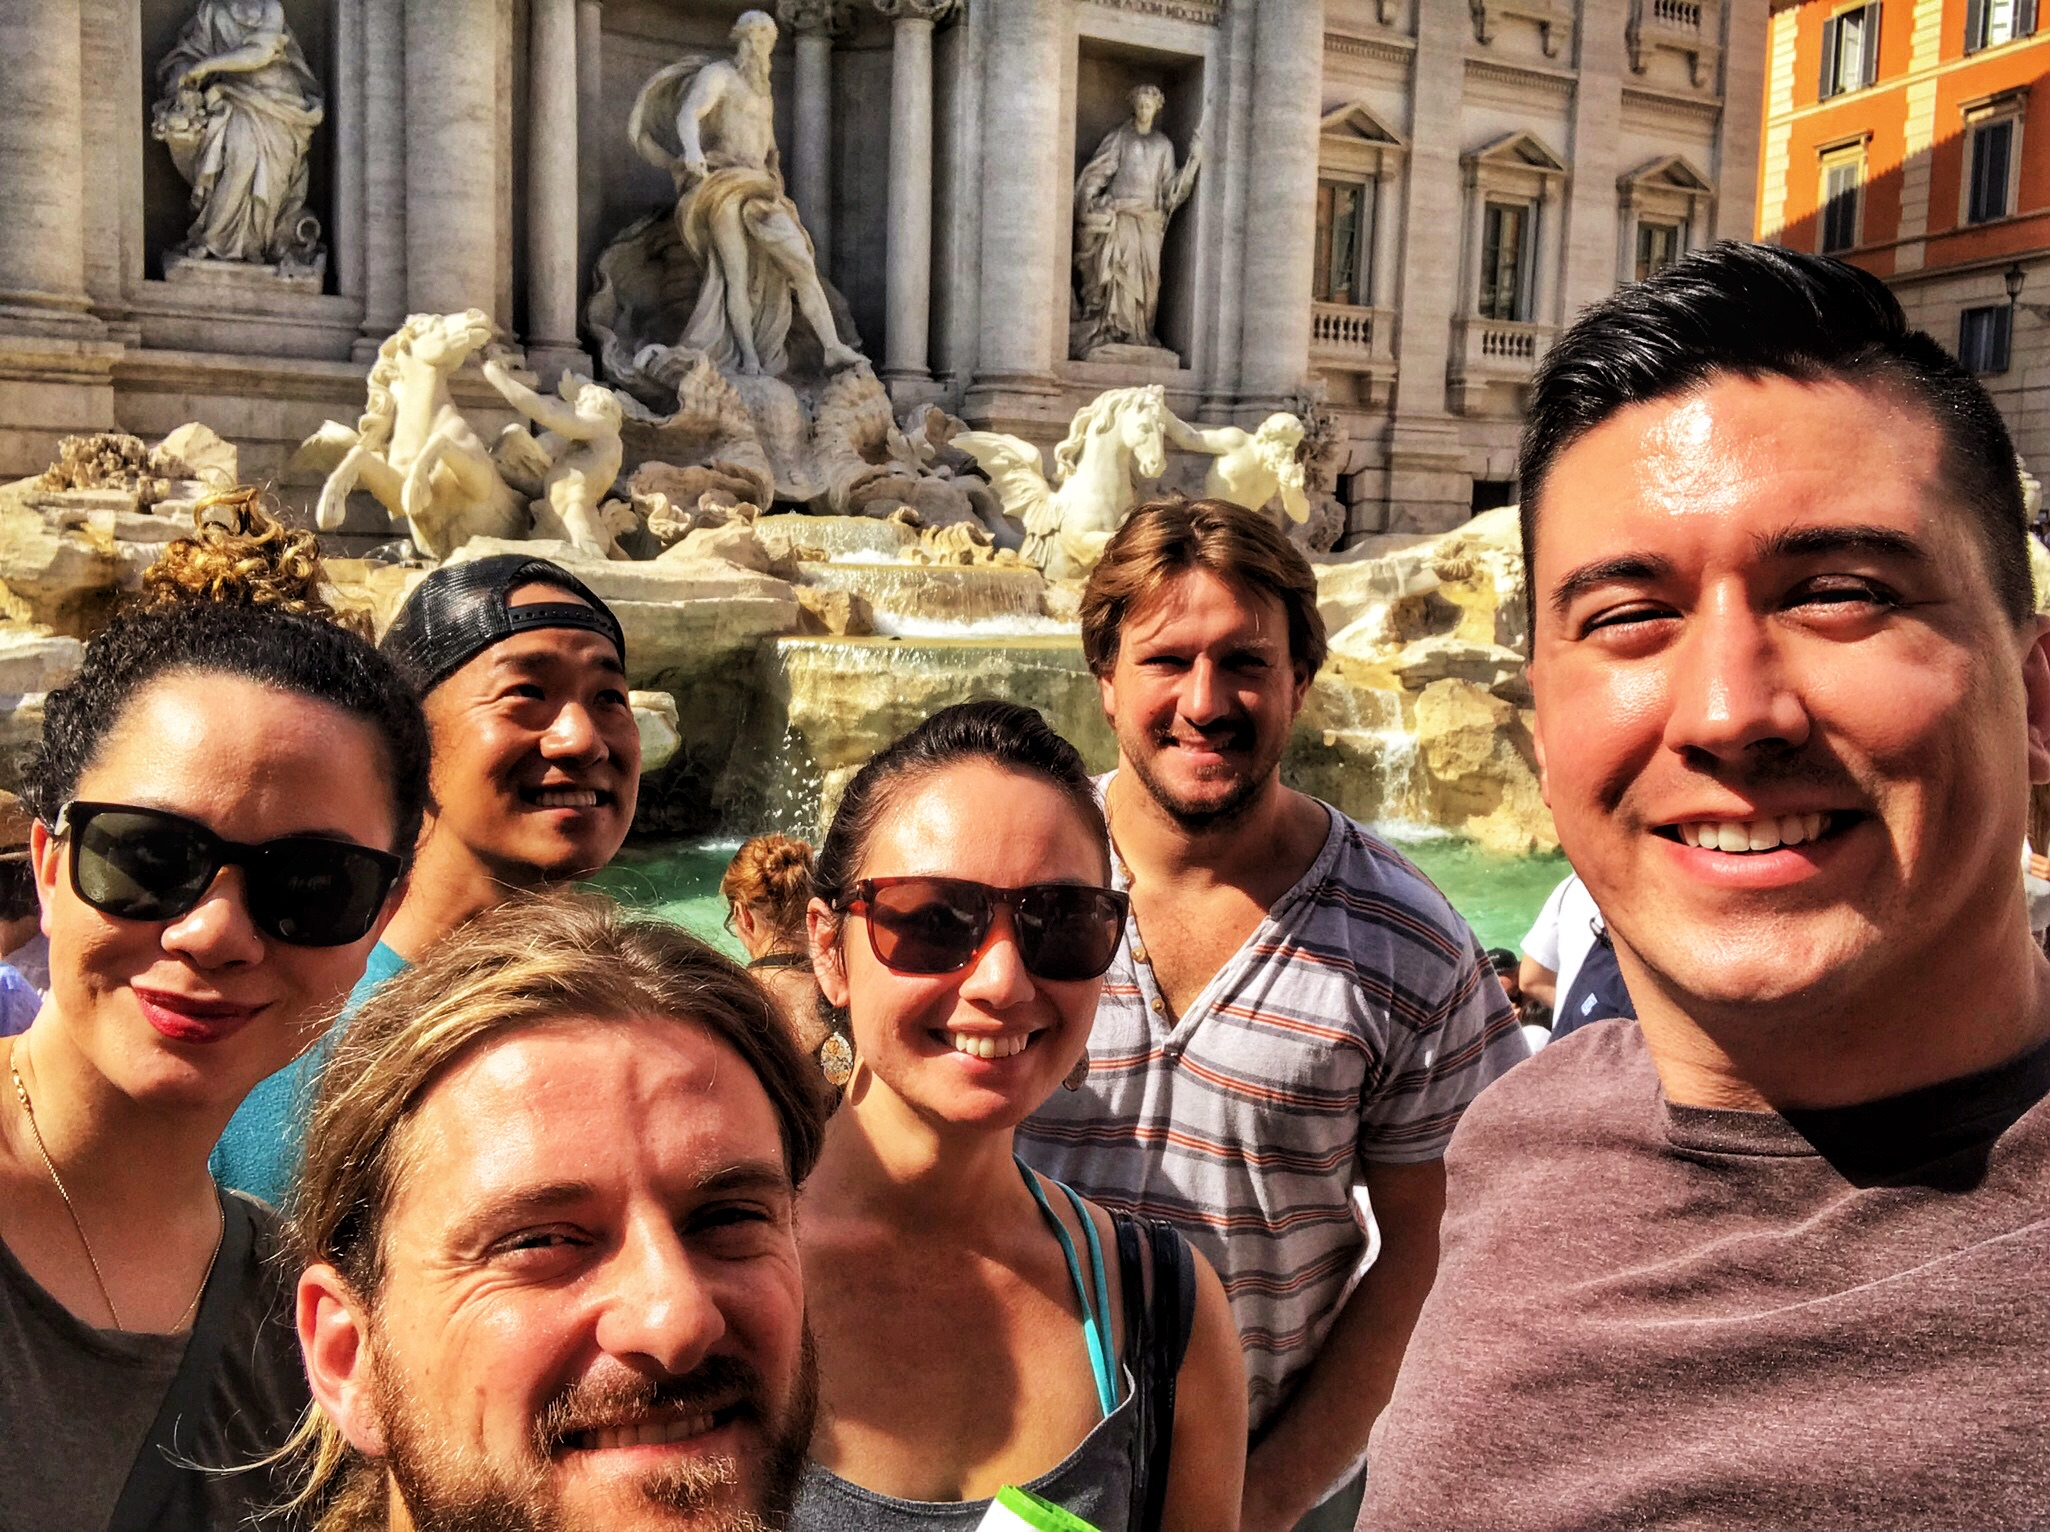 Fun fact brought to you by the Trevi Fountain – Bowe sneezes when there's sun in his eyes.